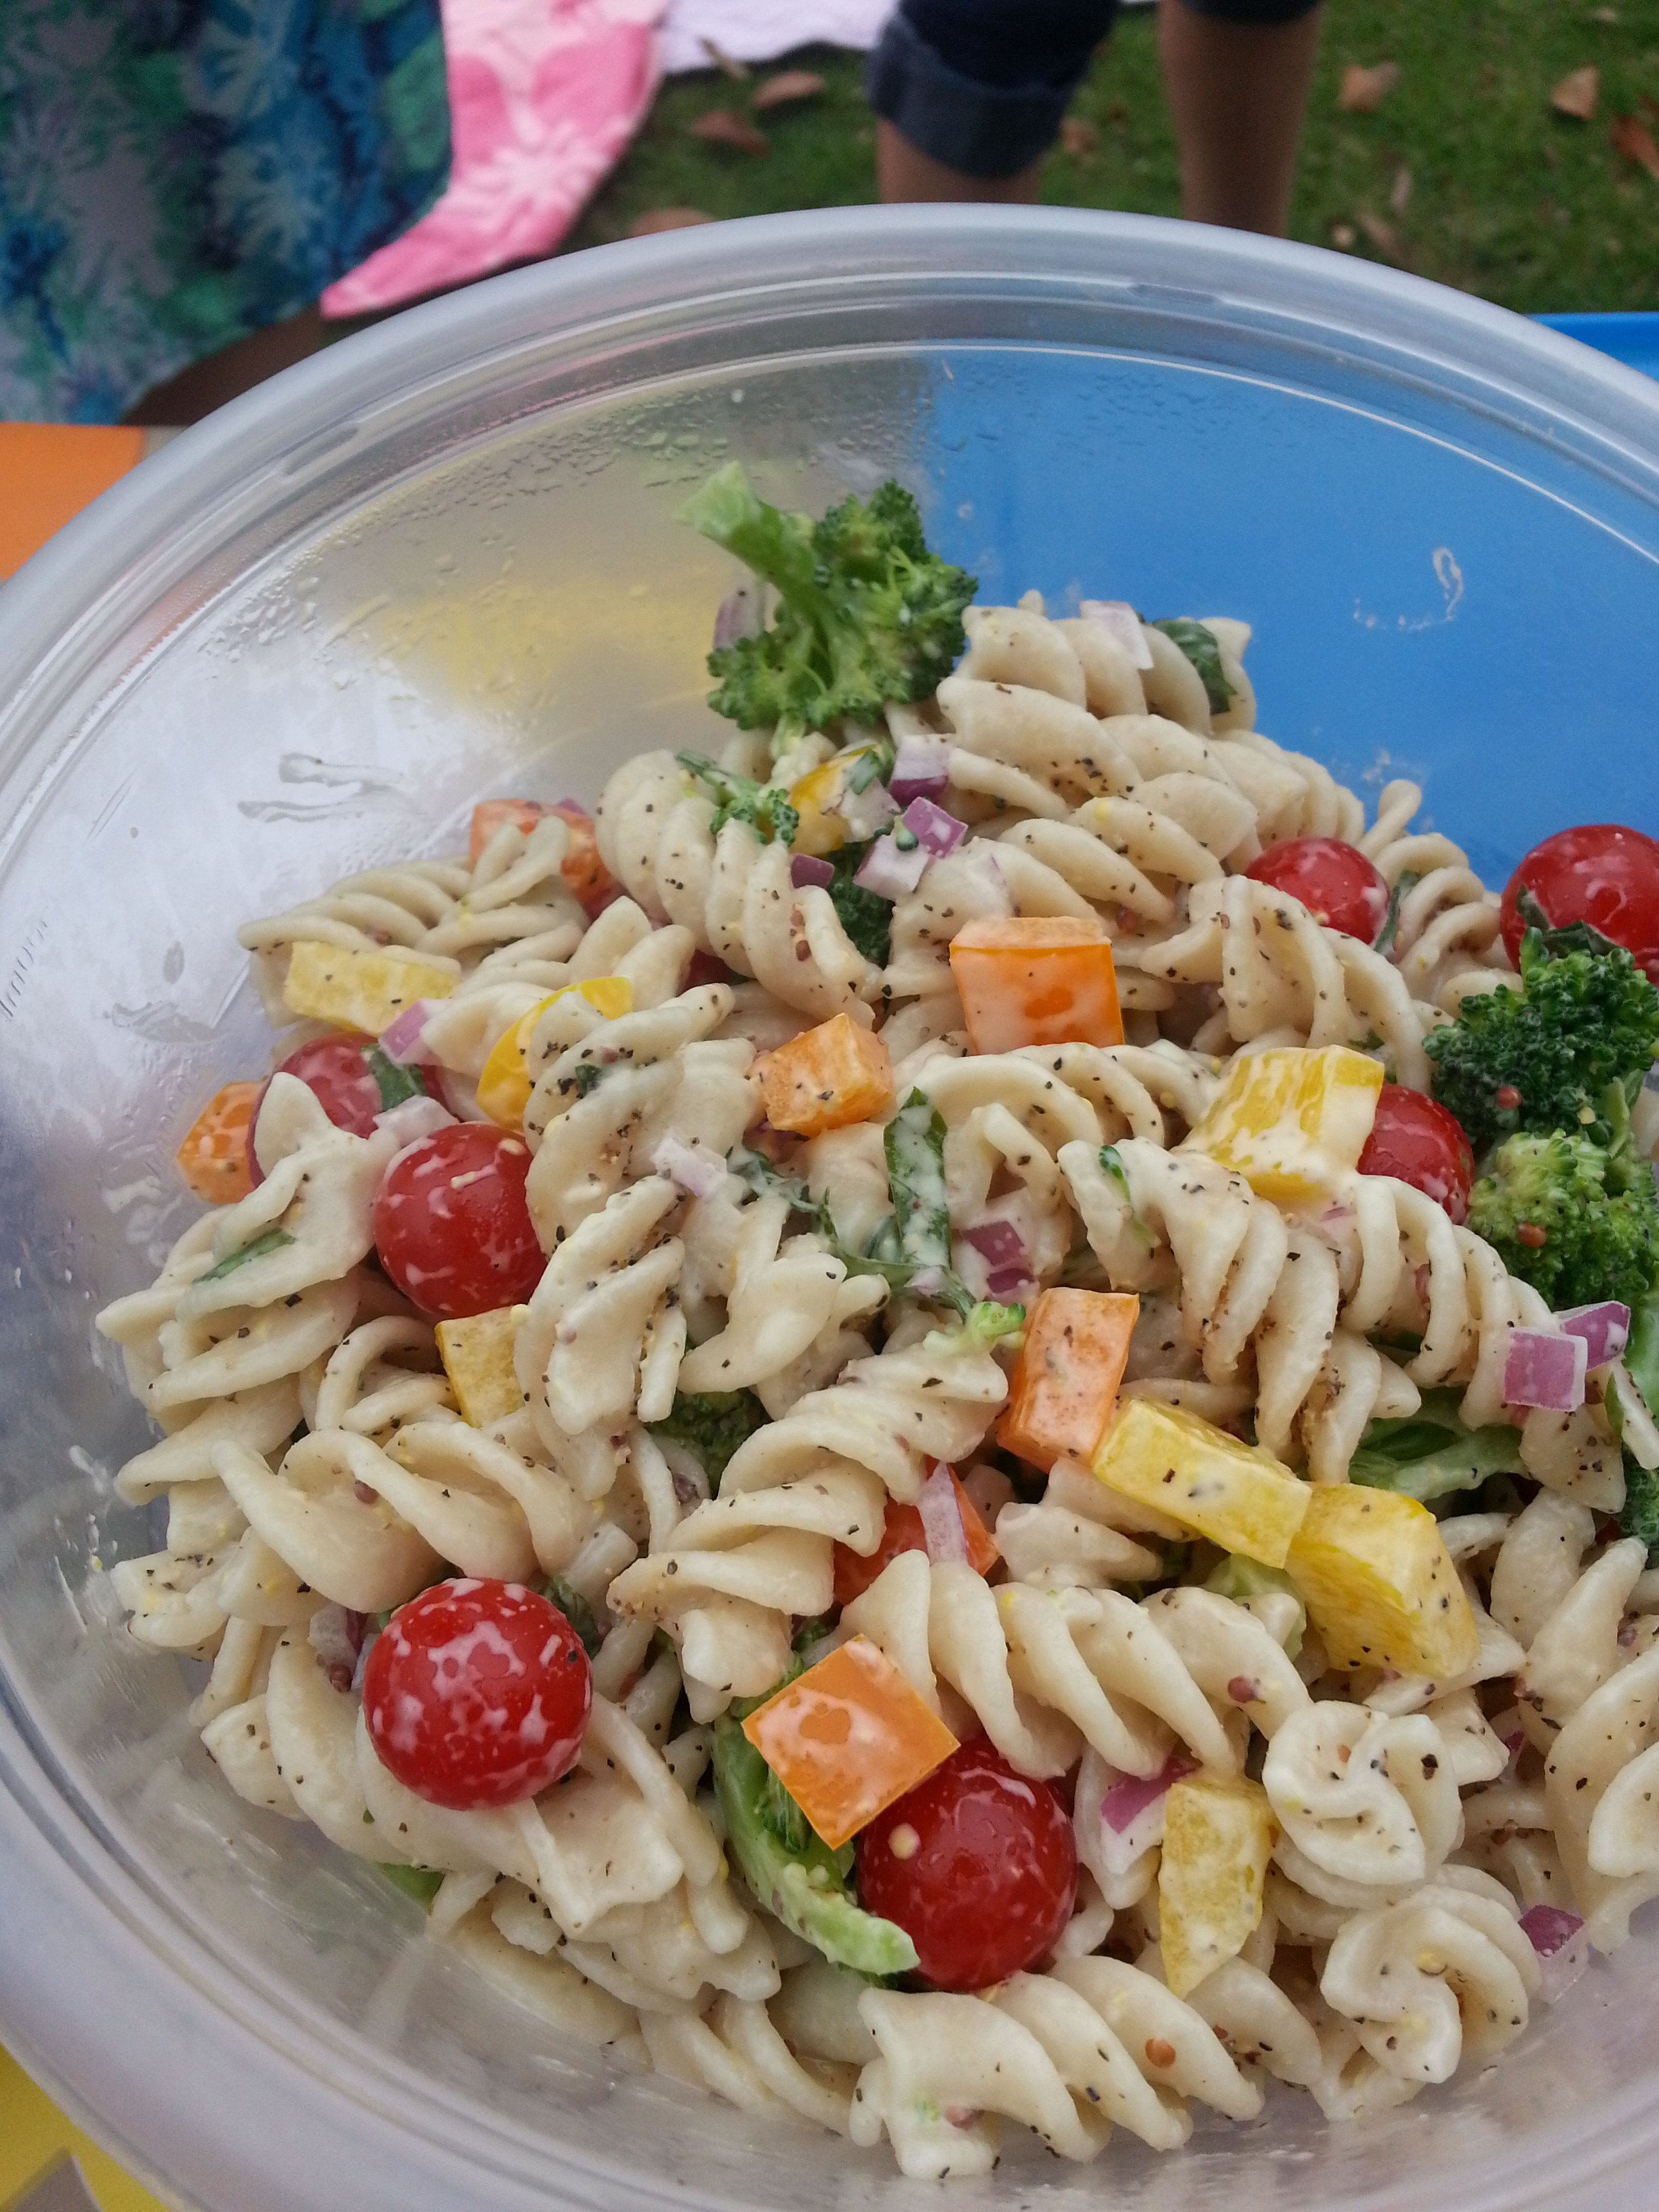 Vegan Pasta Salad Recipes  Vegan Recipes from a Picnic in the Park